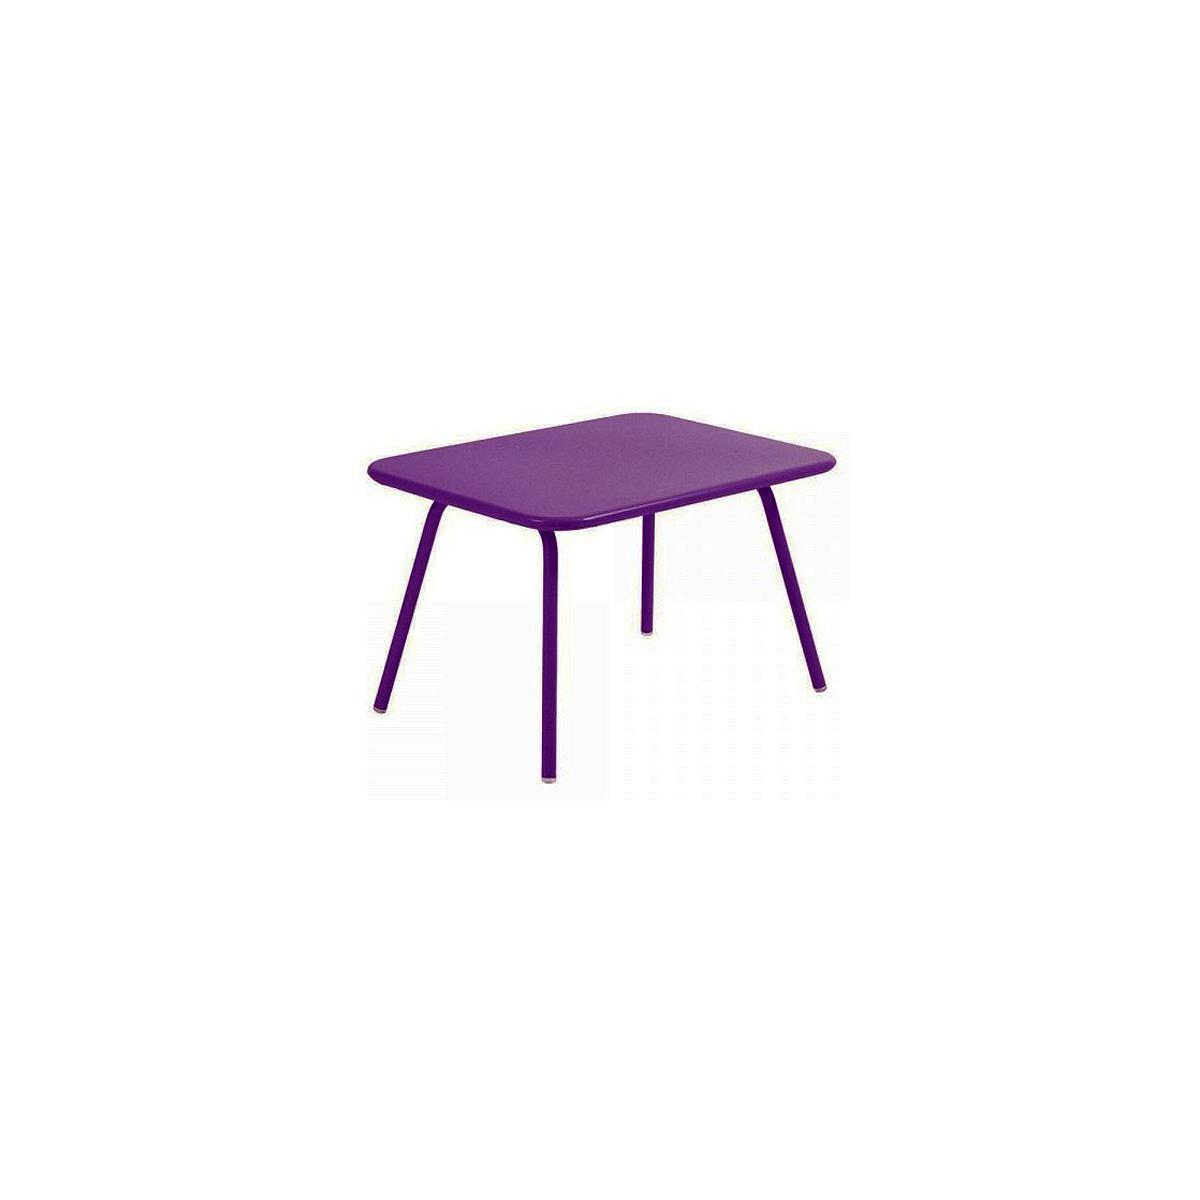 LUXEMBOURG KID by Fermob Table aubergine